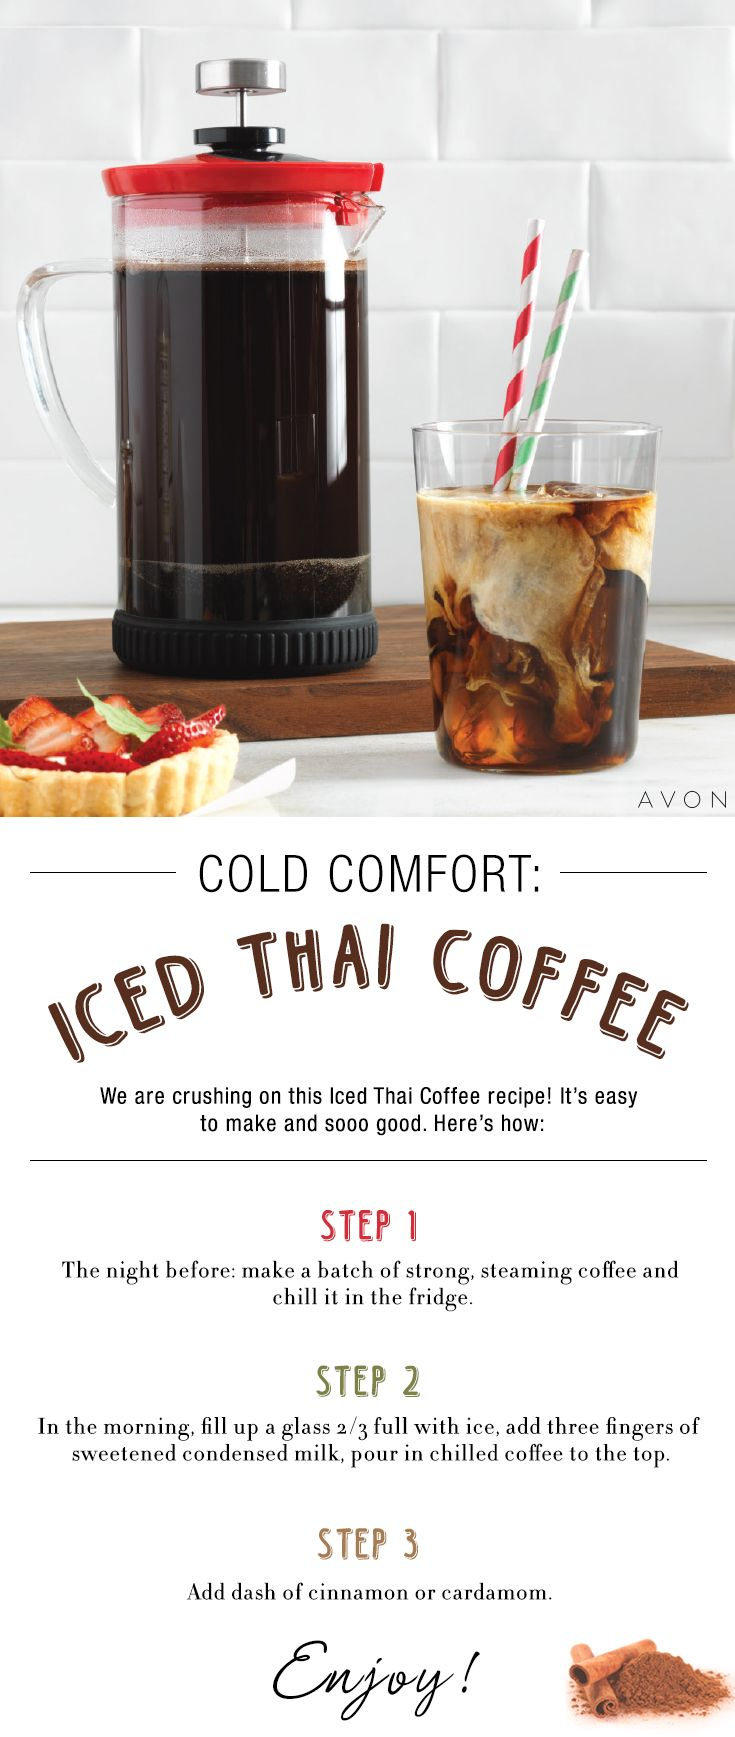 Switch up your morning coffee routine with our refreshing